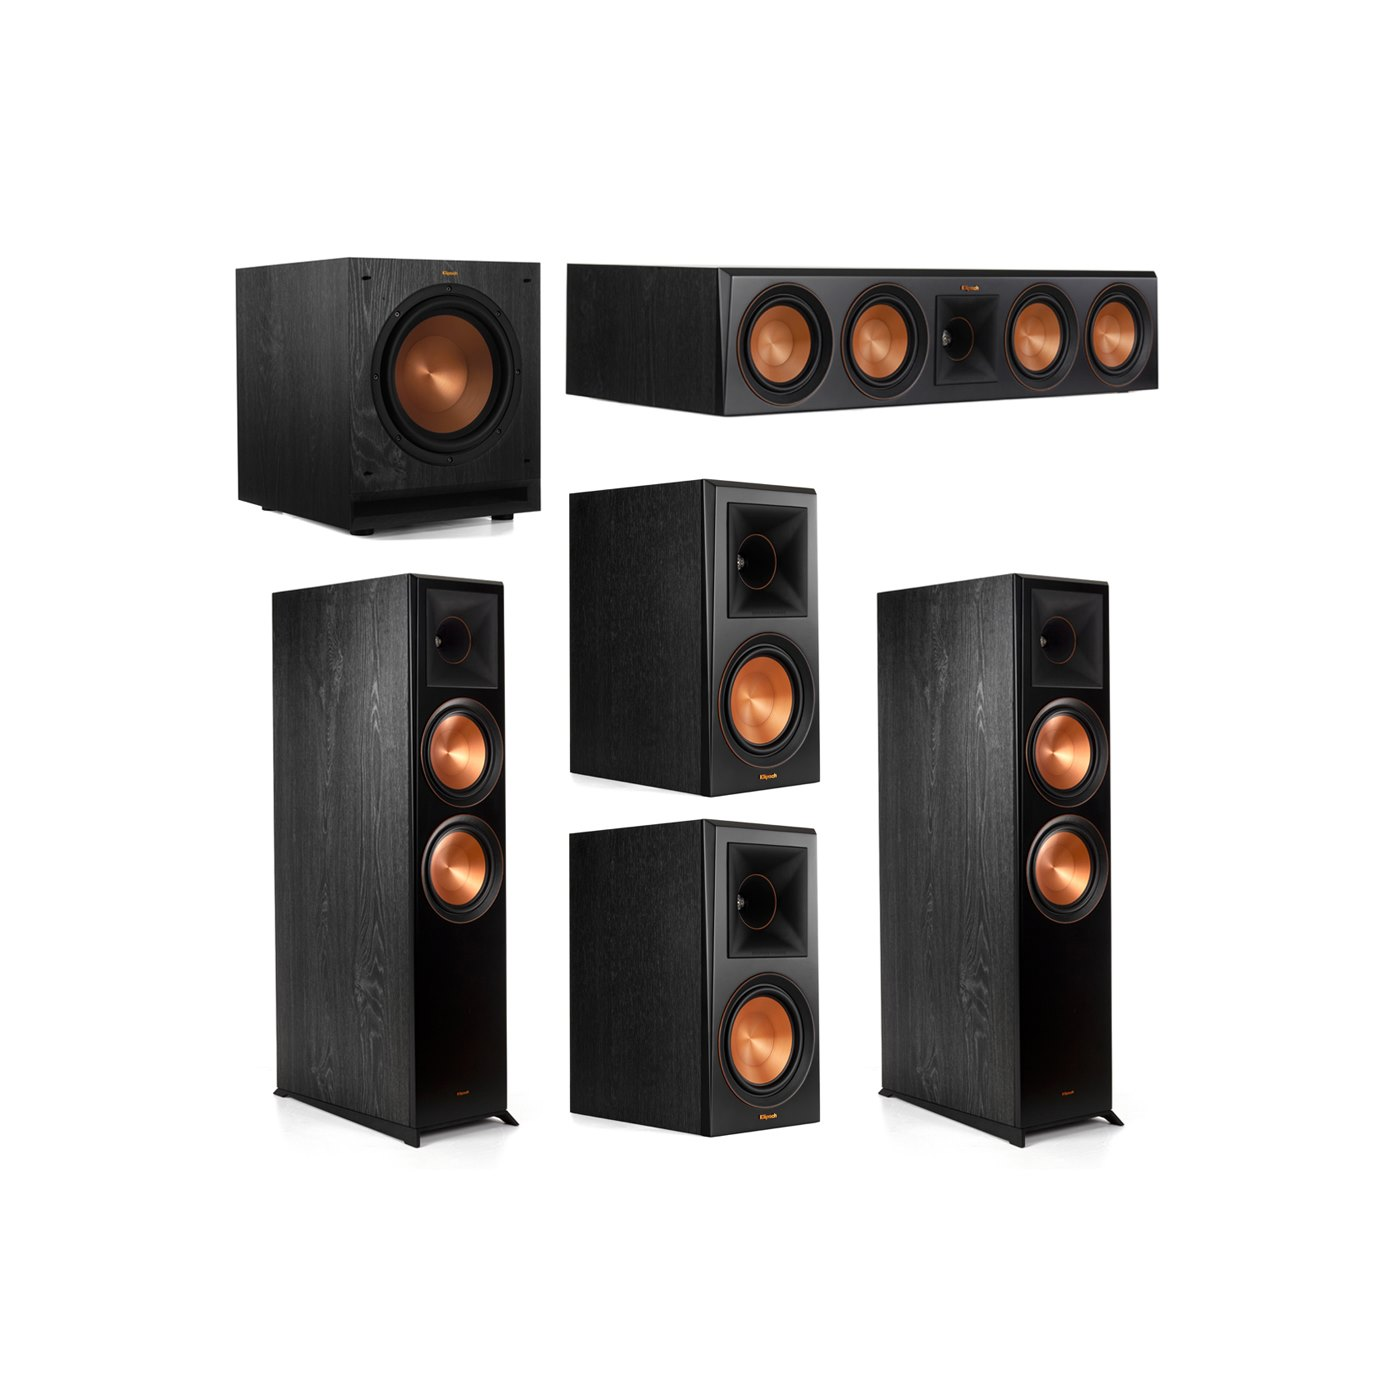 Klipsch 5.1.2 System - 2 RP-8060FA Dolby Atmos Speakers, 1 RP-504C, 2 RP-600M Speakers, 1 SPL-100